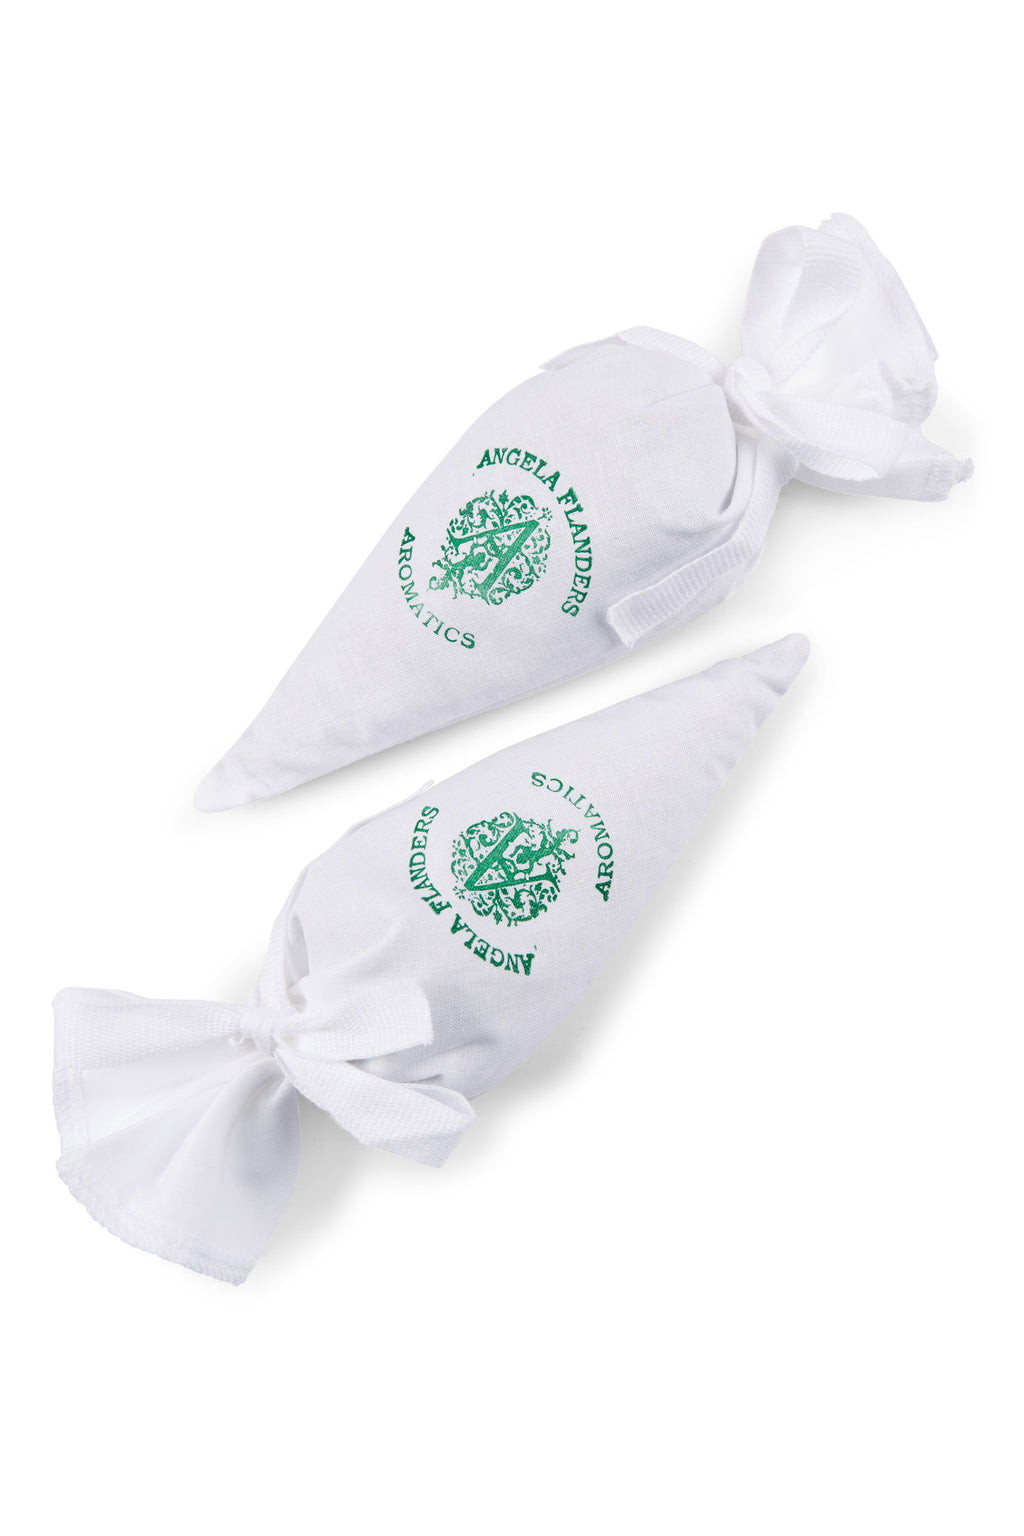 Angela Flanders French Moth Herbs Bags